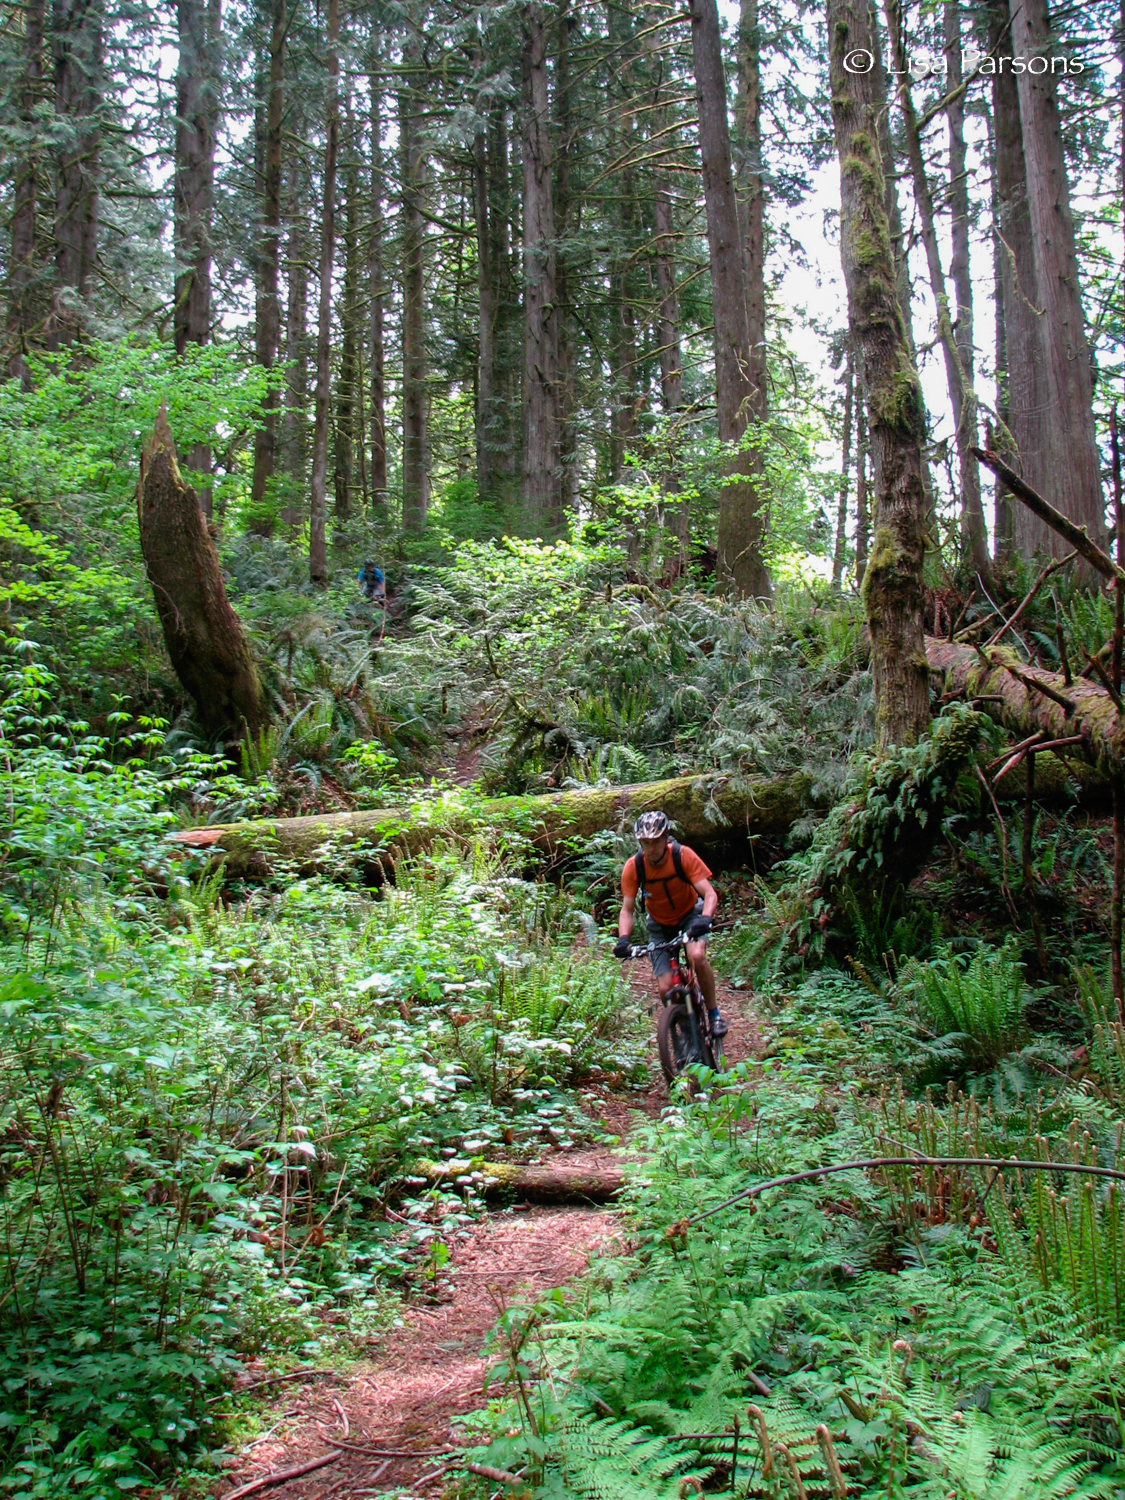 Mountain biker navigating the steeper lower section of trail.